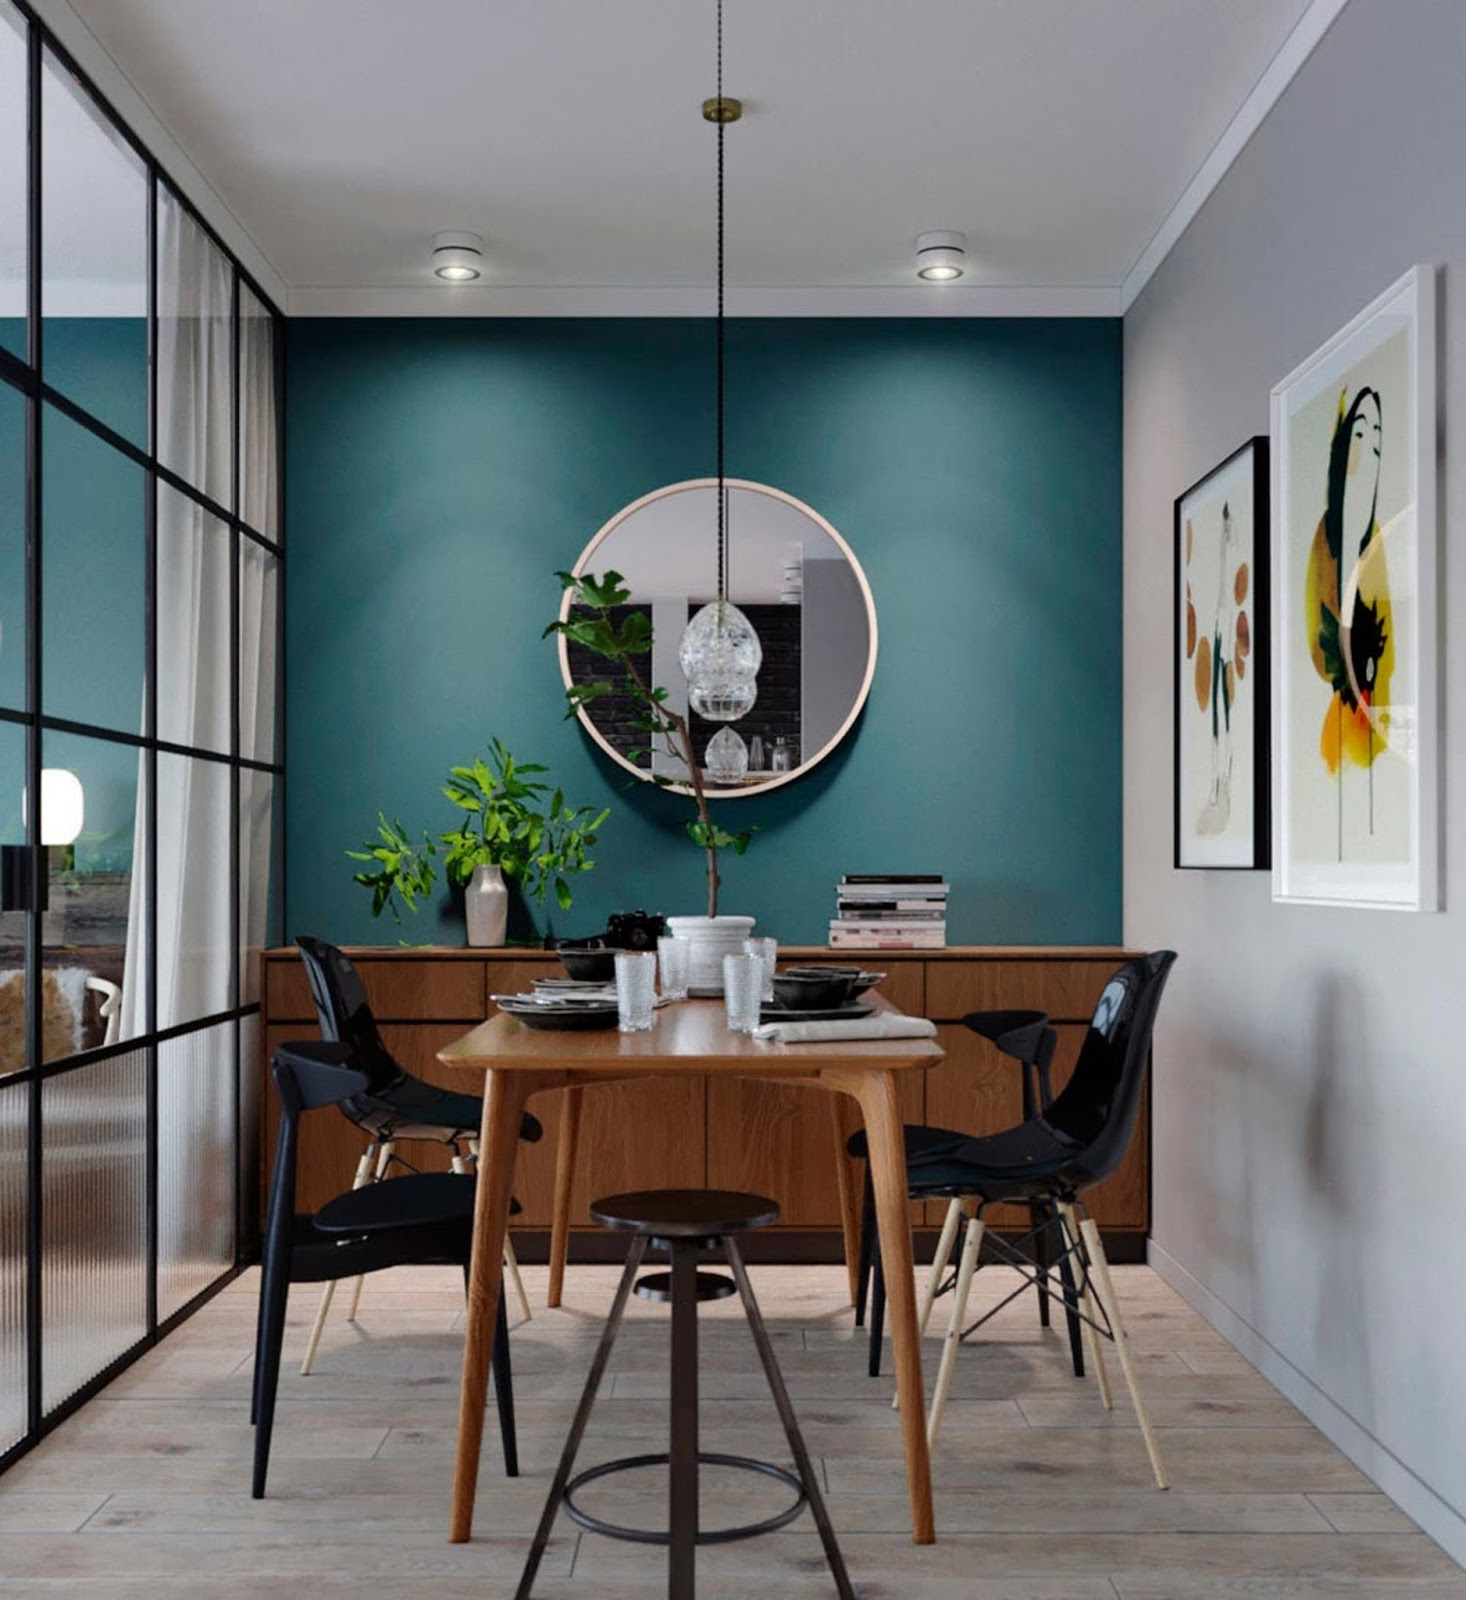 teal wall color, eames chairs, dining table